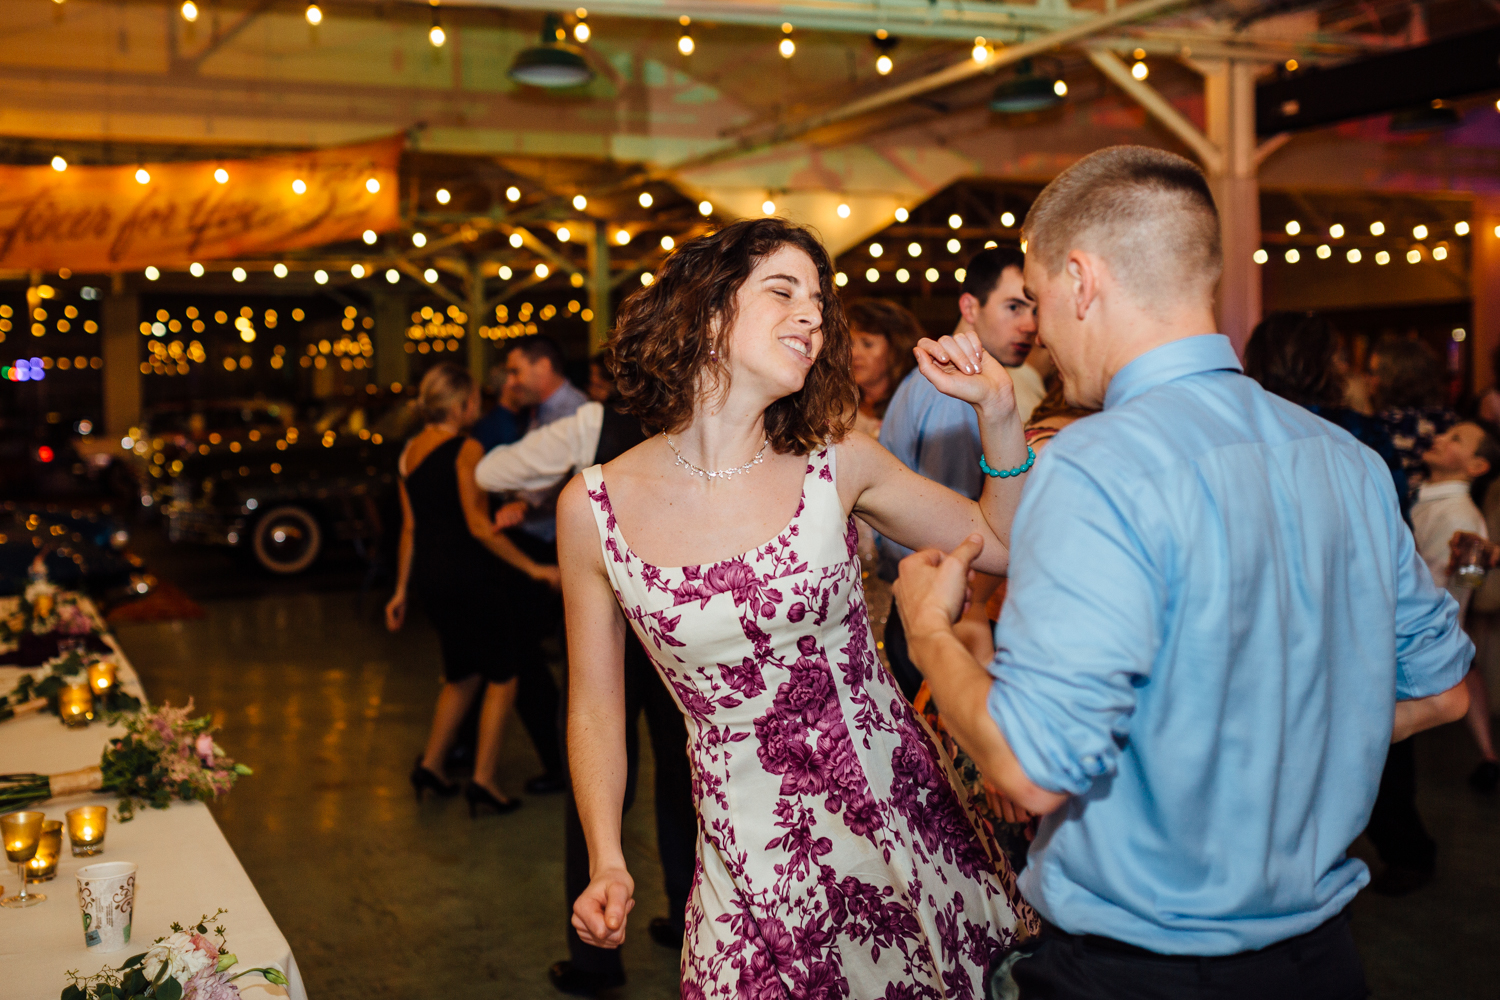 Fun, Intimate Spring Wedding by Corrie Mick Photography-118.jpg